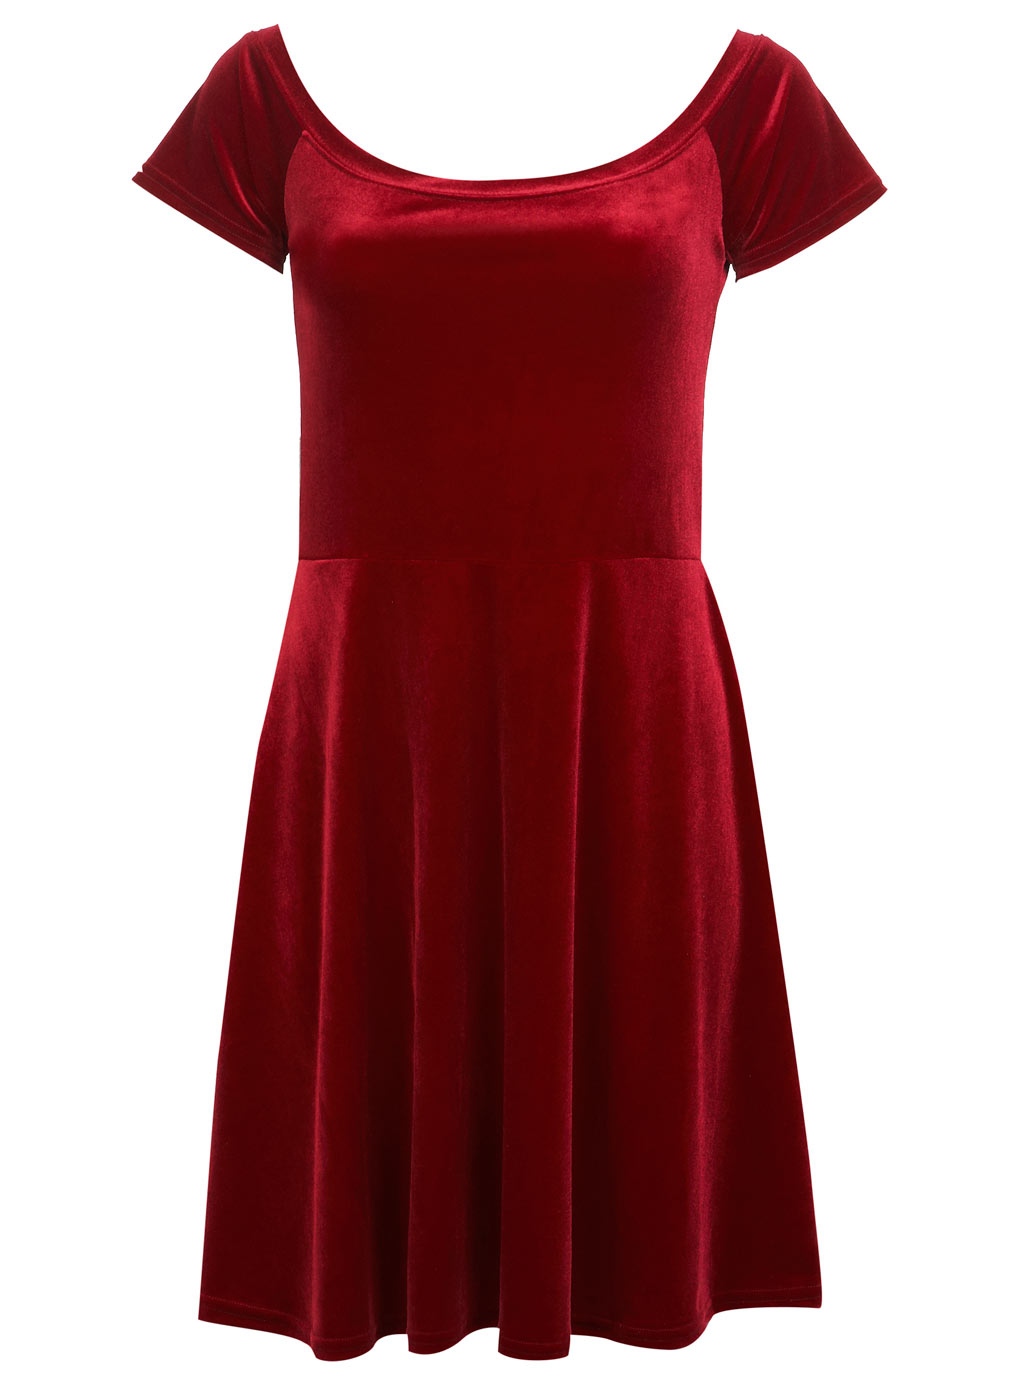 Red Skater Dress Picture Collection Dressedupgirl Com